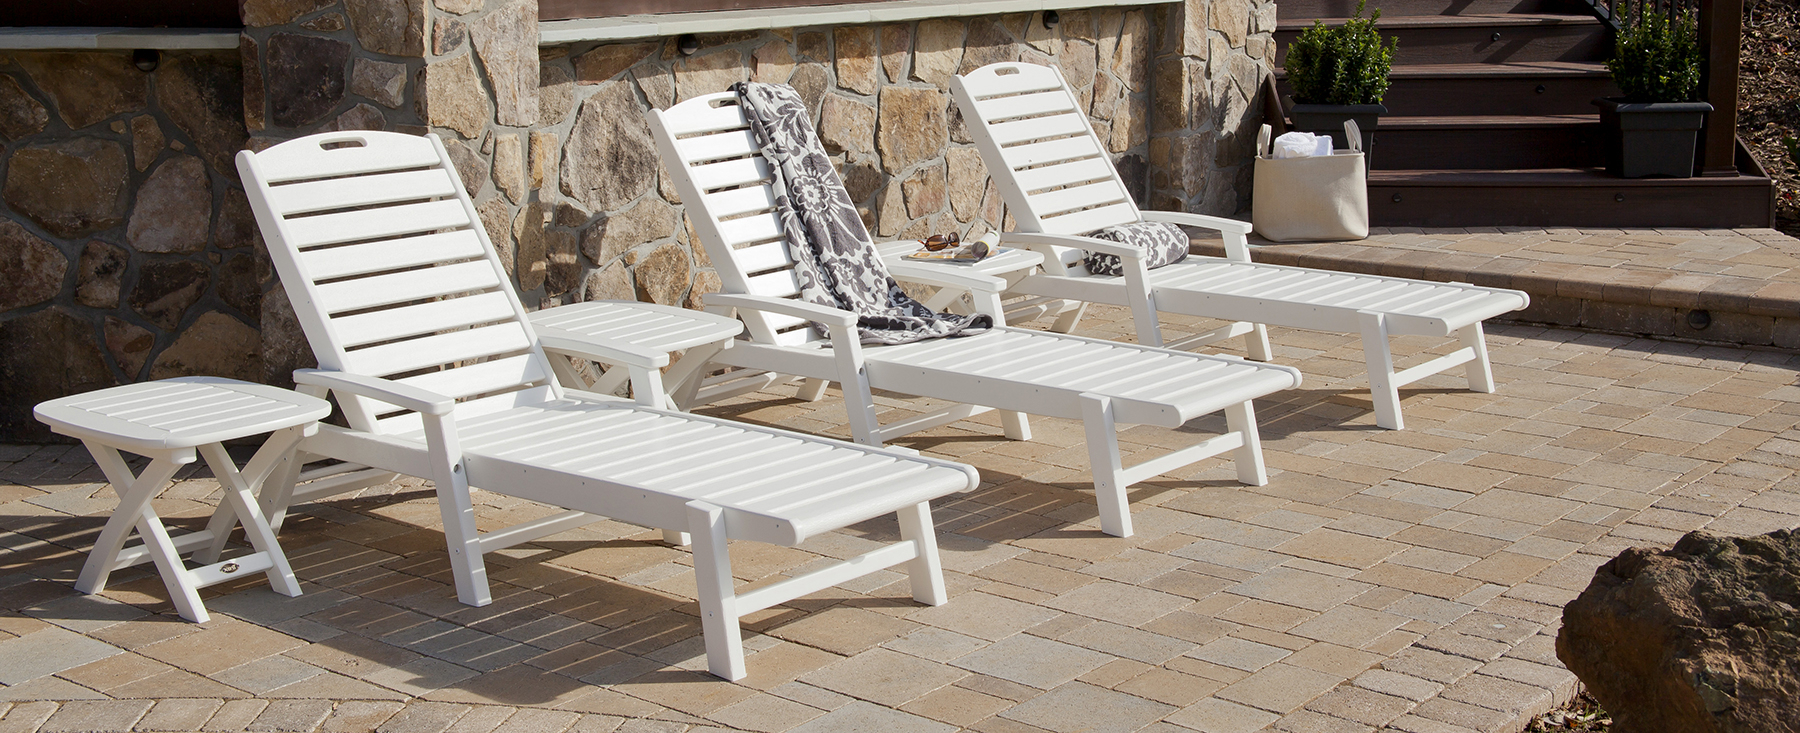 Most Recently Released Brown Folding Patio Chaise Lounger Chairs Inside The Shopper's Guide To Buying An Outdoor Chaise Lounge (View 17 of 25)